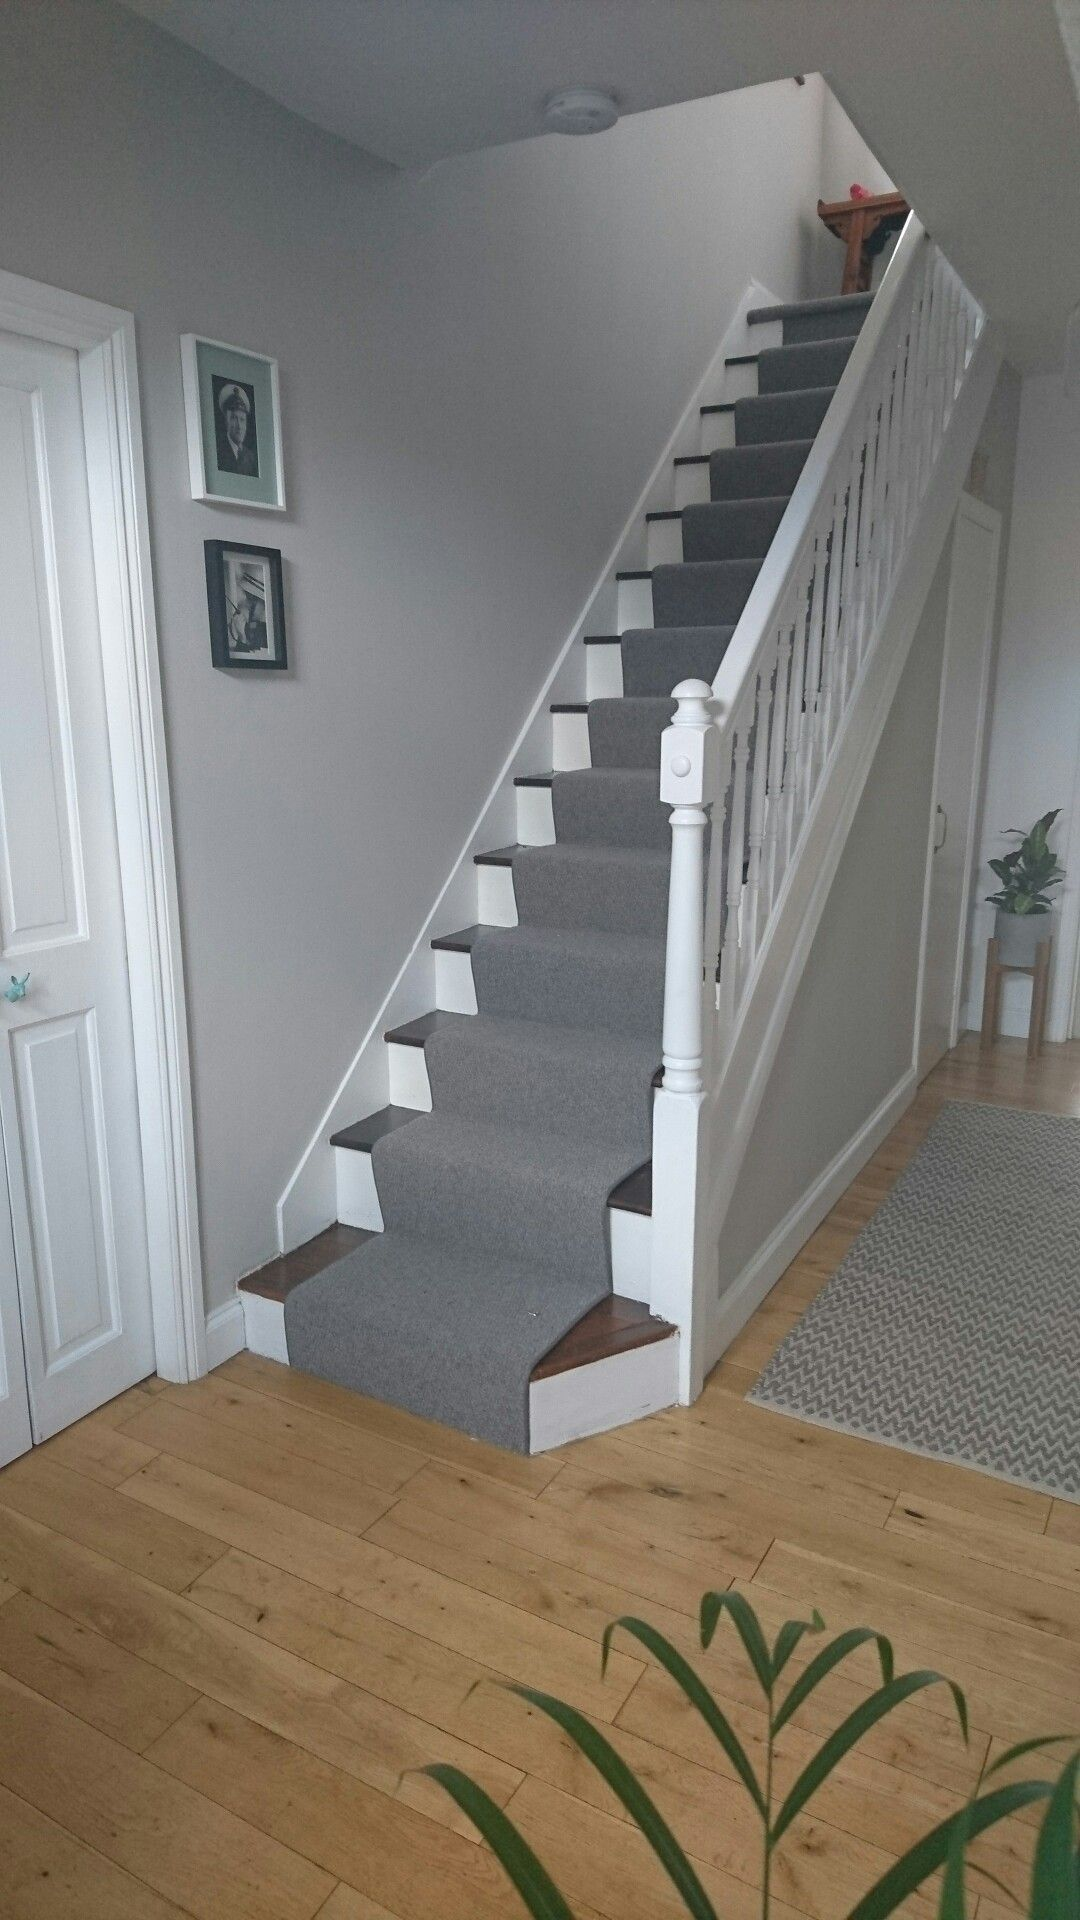 Hallway Finished At Last Grey Runner And Farrow And Ball Cornforth White Paint Hallwayideas Hallway Colours House Stairs White Hallway